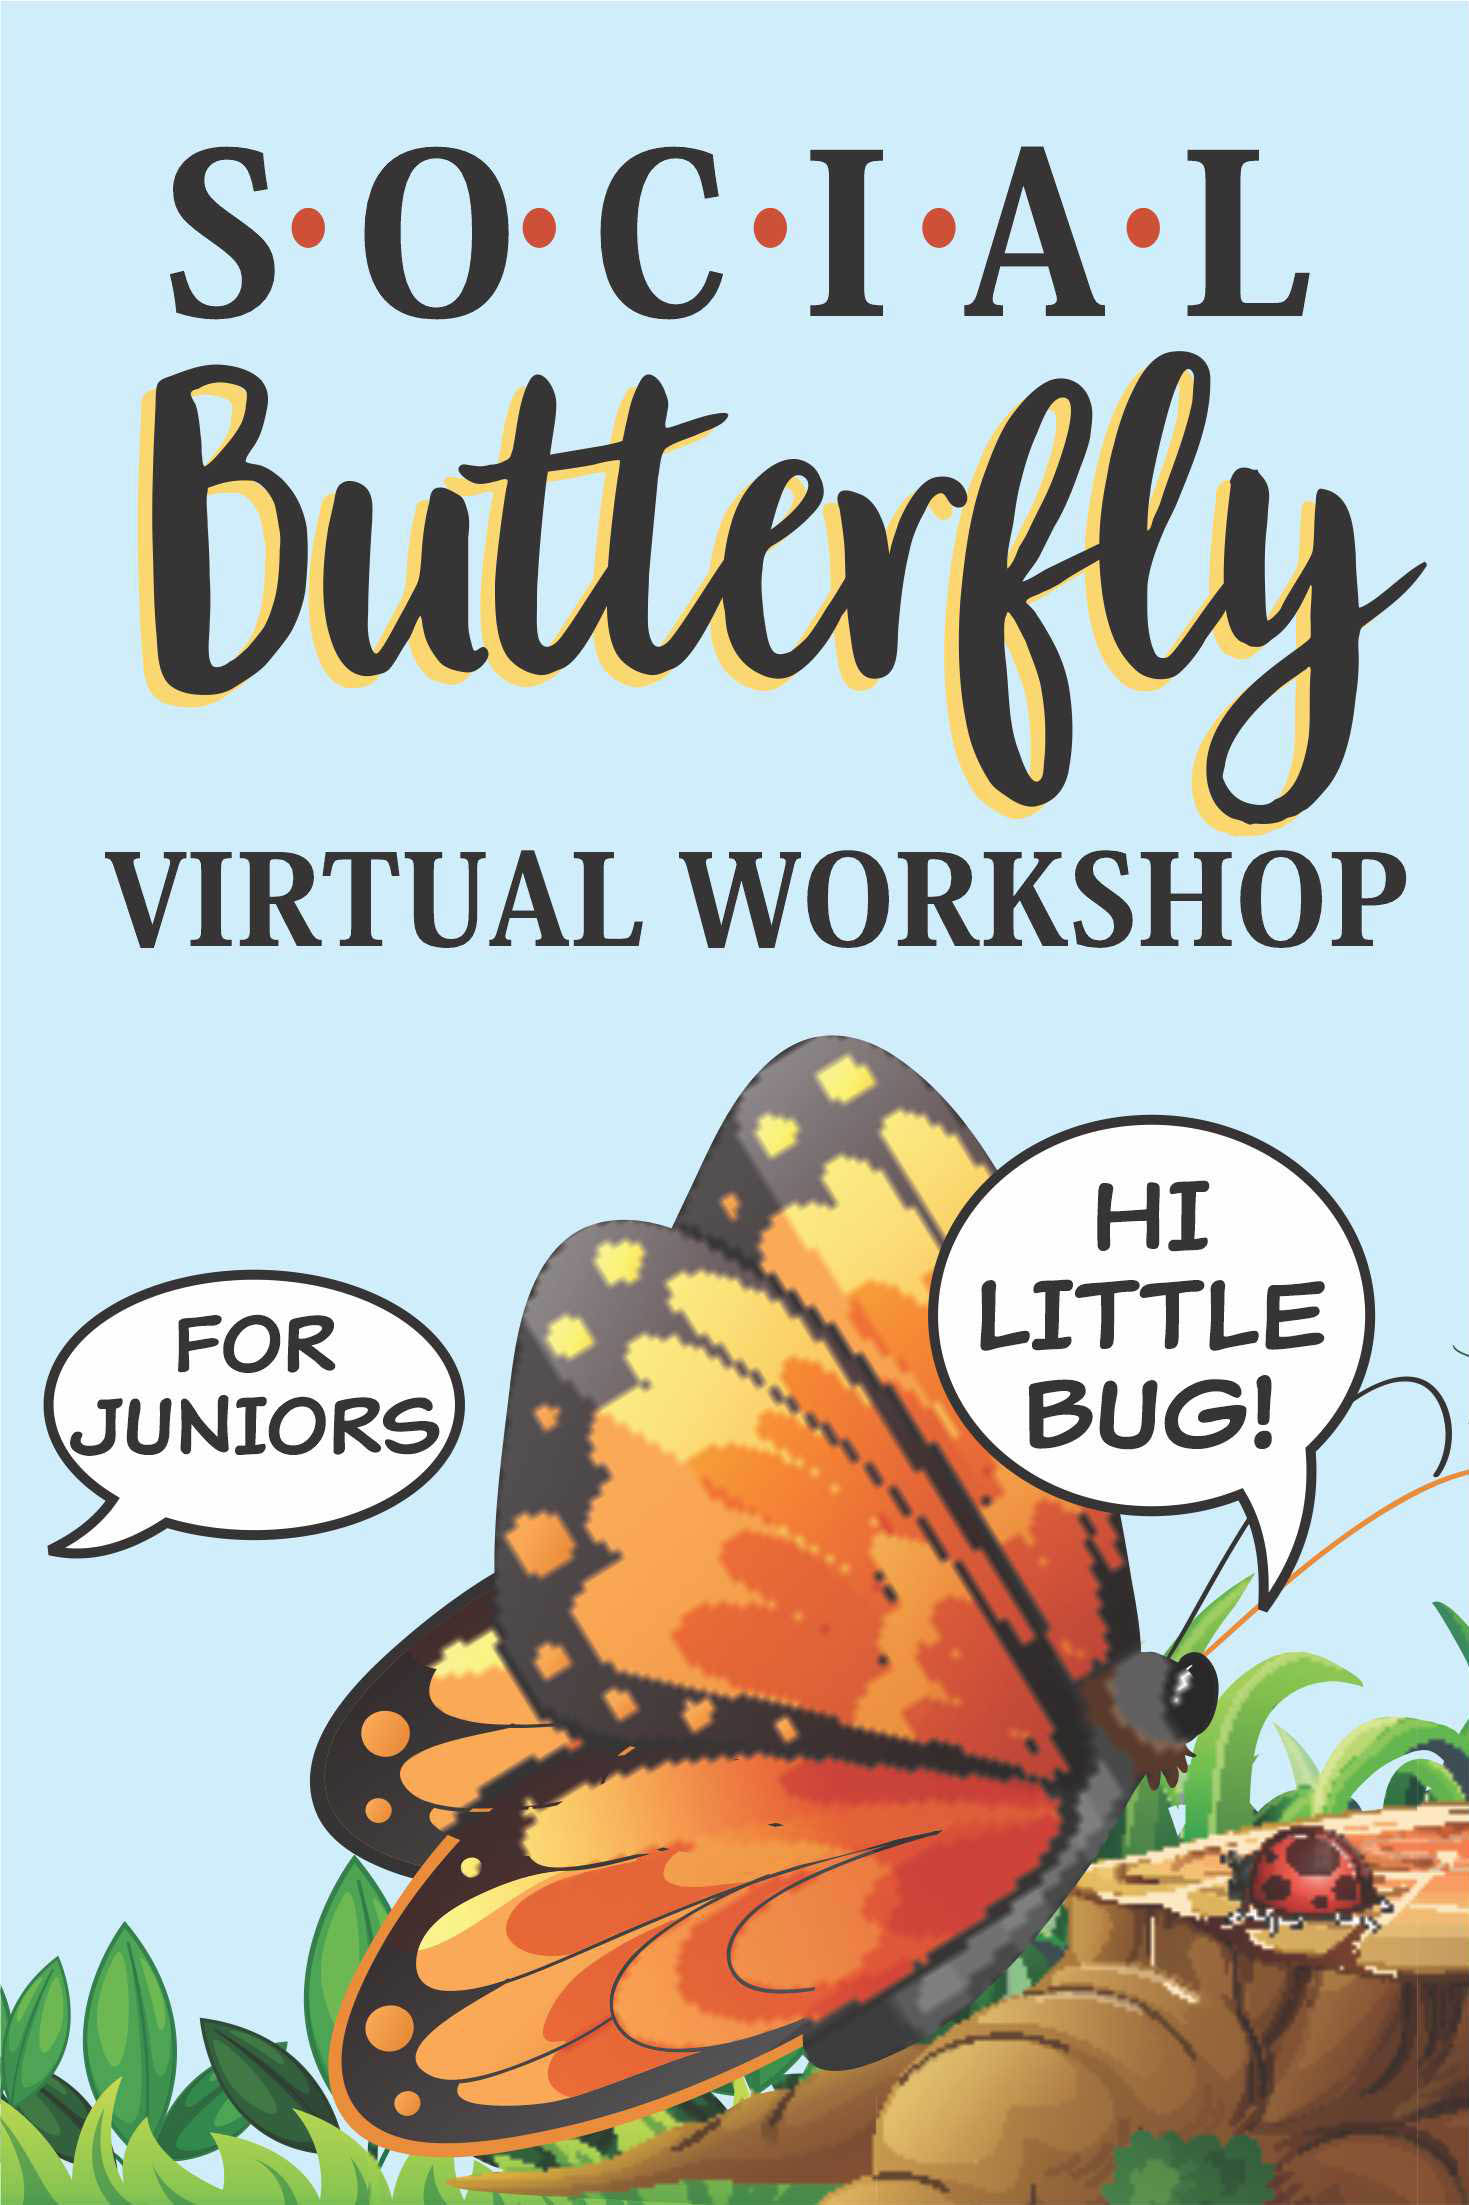 Your Juniors will have fun learning about table manners, phone manners, how to start conversations, and more! #makingfriends #juniors #gsjuniors #socialbutterfly #virtualworkshop #onlineclass #manners #conversations #girlscouts #girlscoutsonline #juliettescouts via @gsleader411